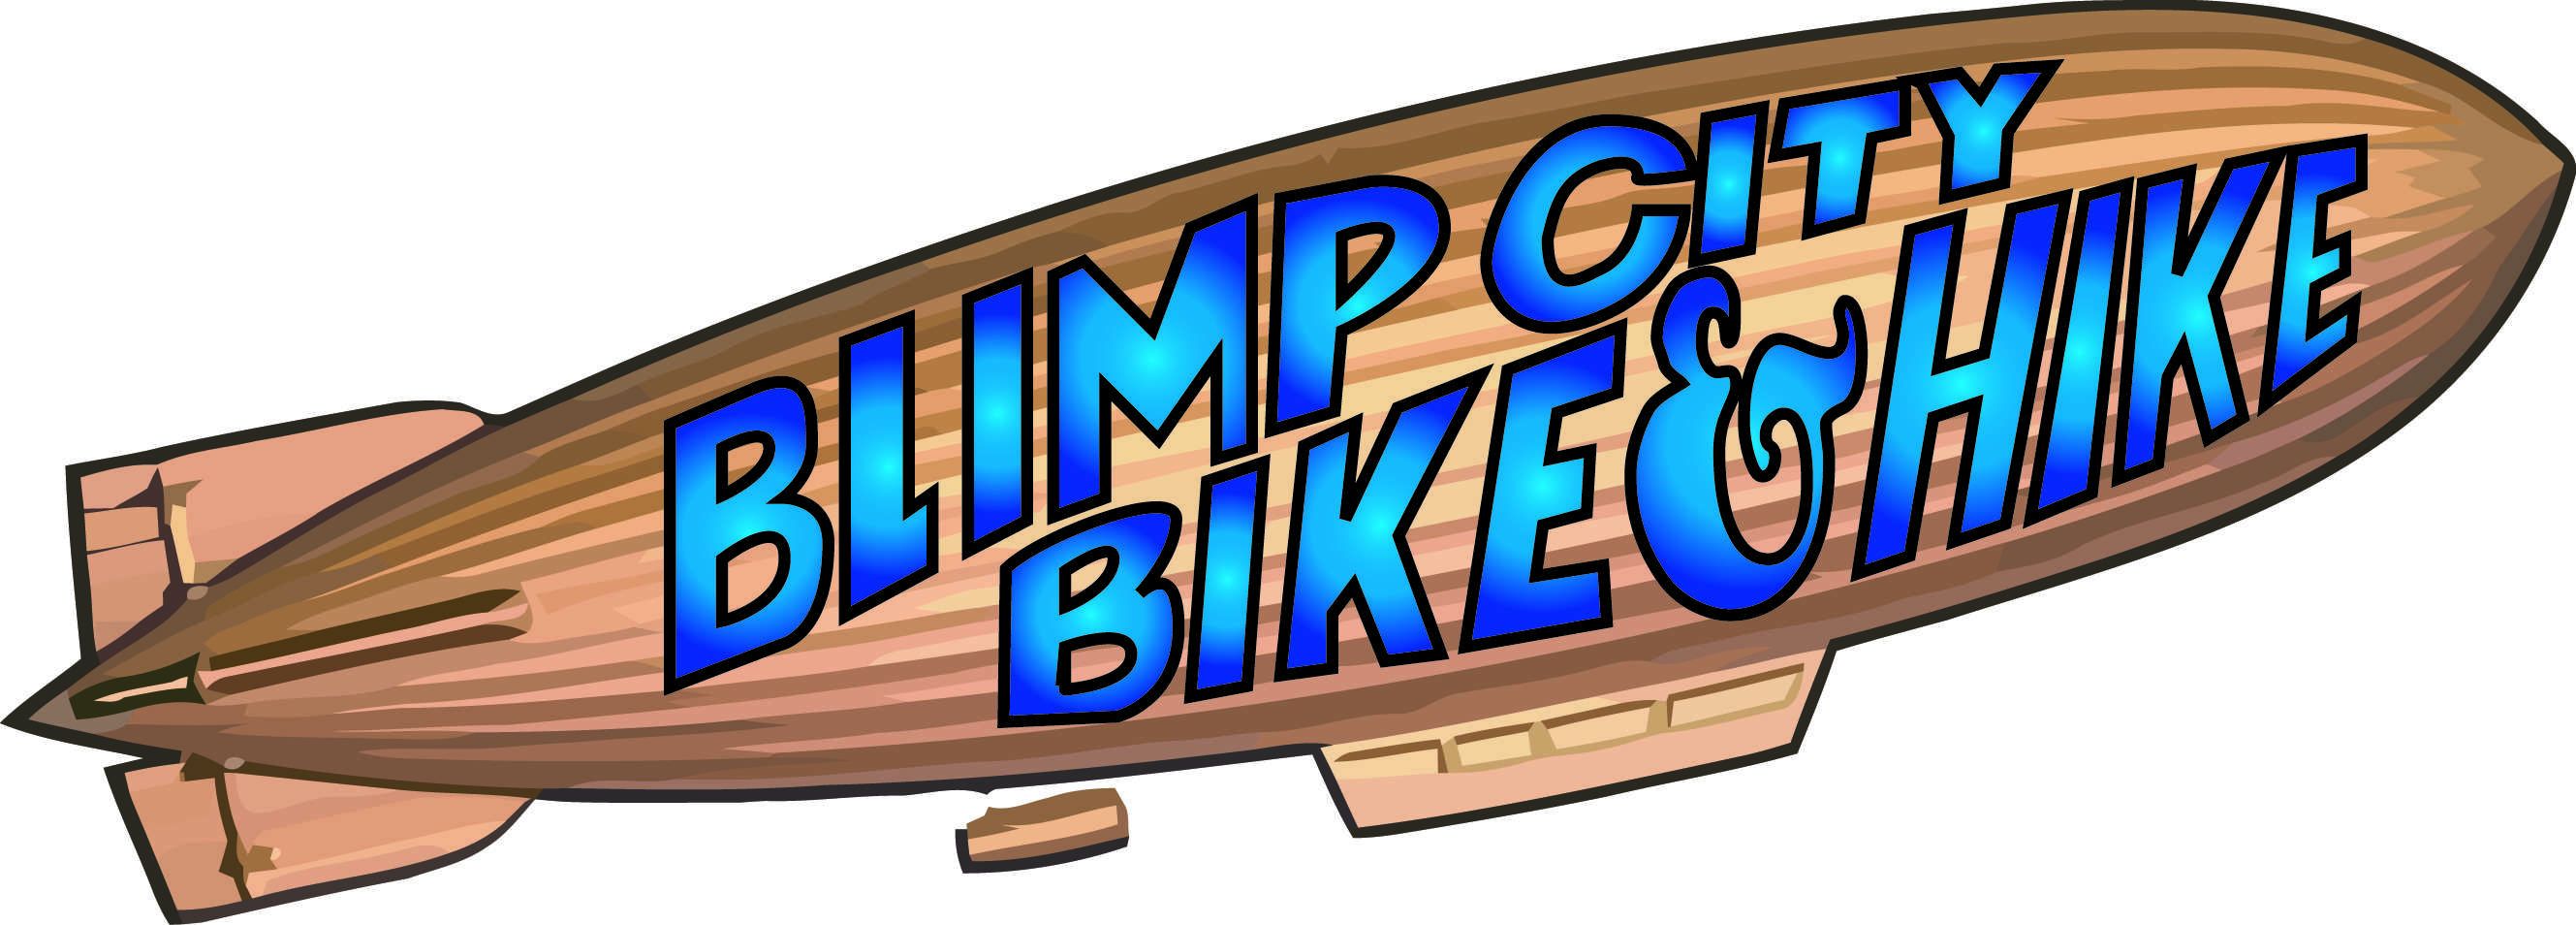 Blimp City Bike and Hike